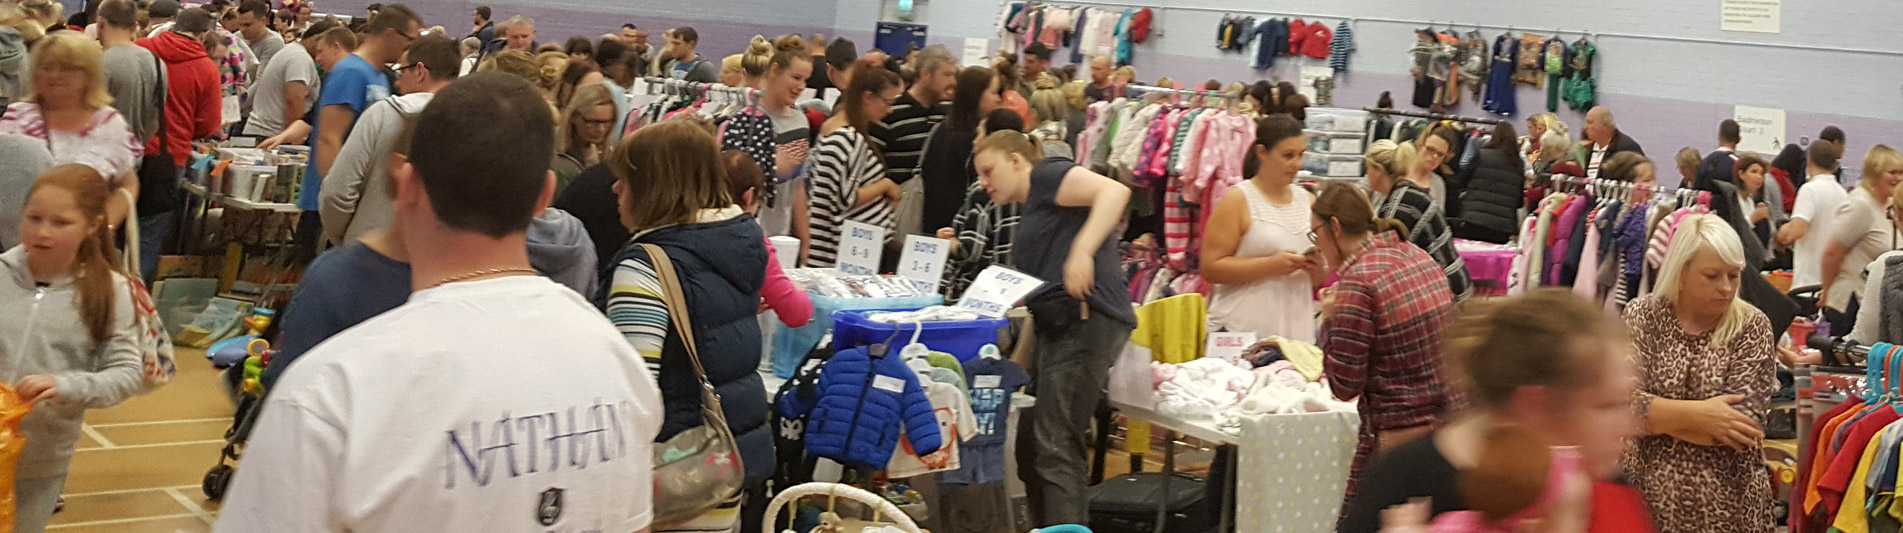 Table Tots Baby Sales Yorkshire